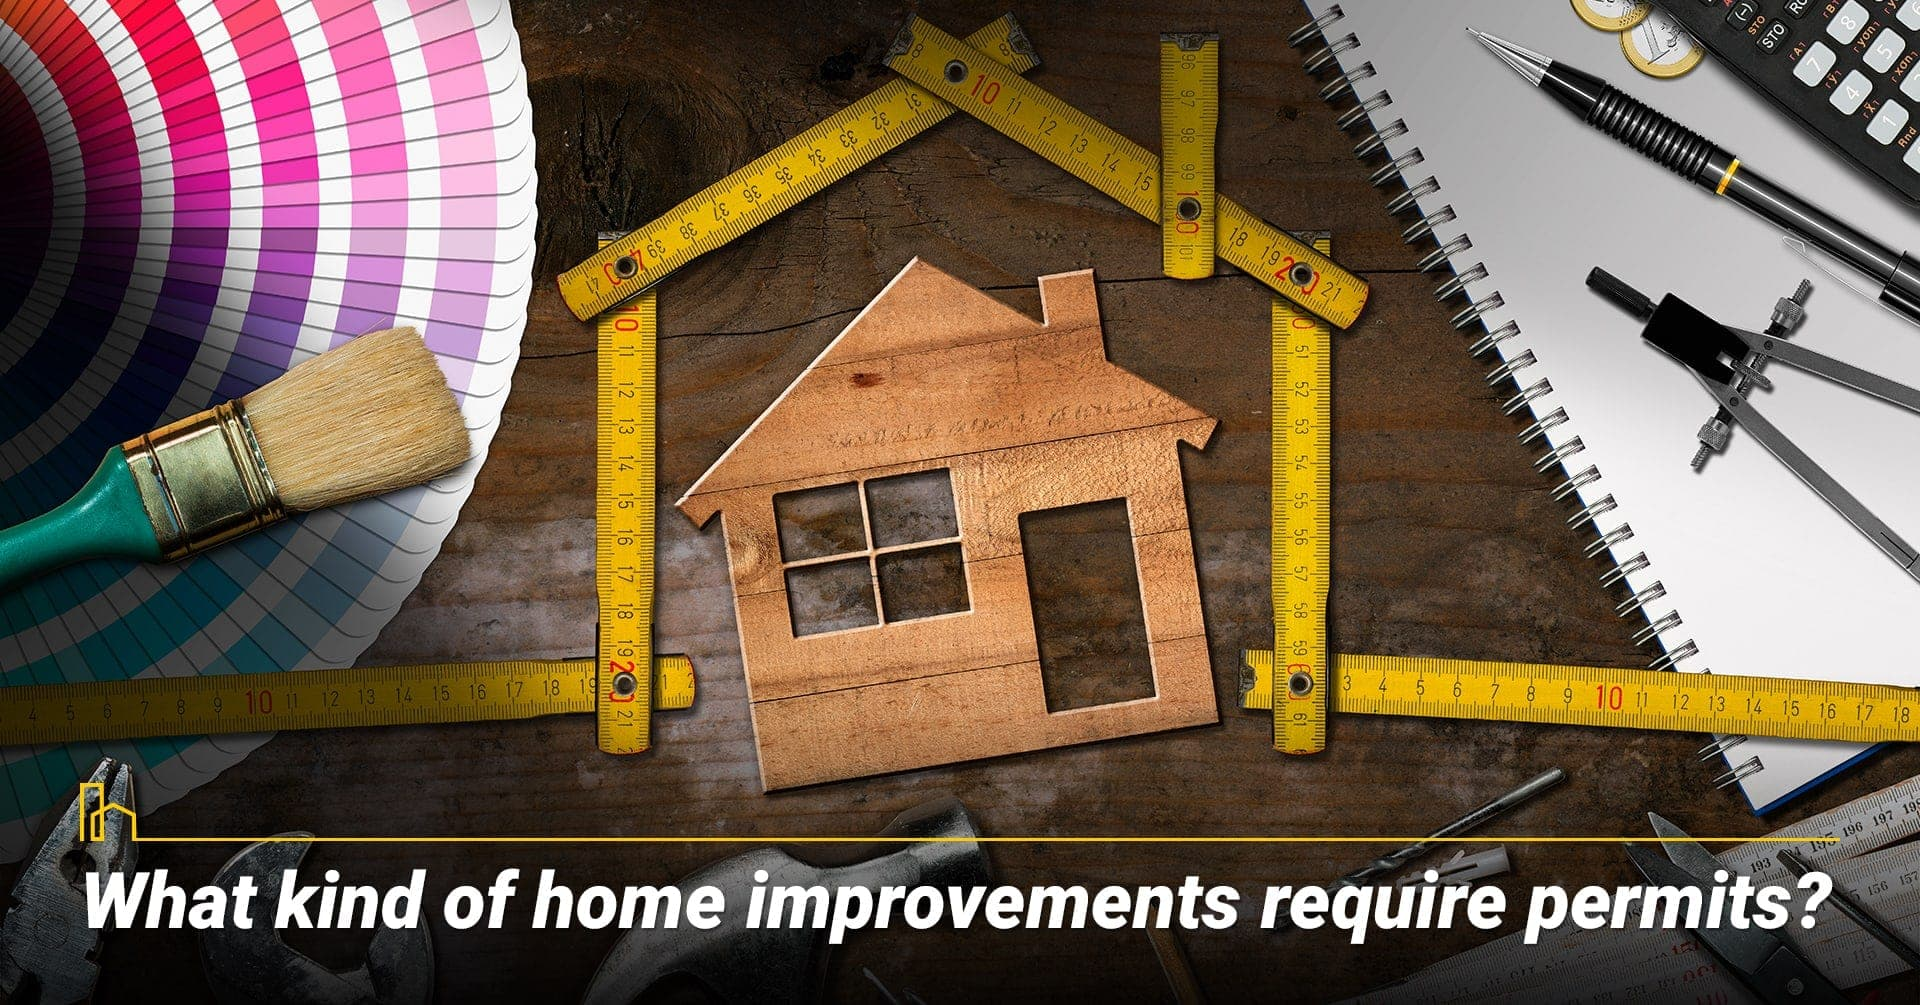 What kind of home improvements require permits? Decide on home improvement projects